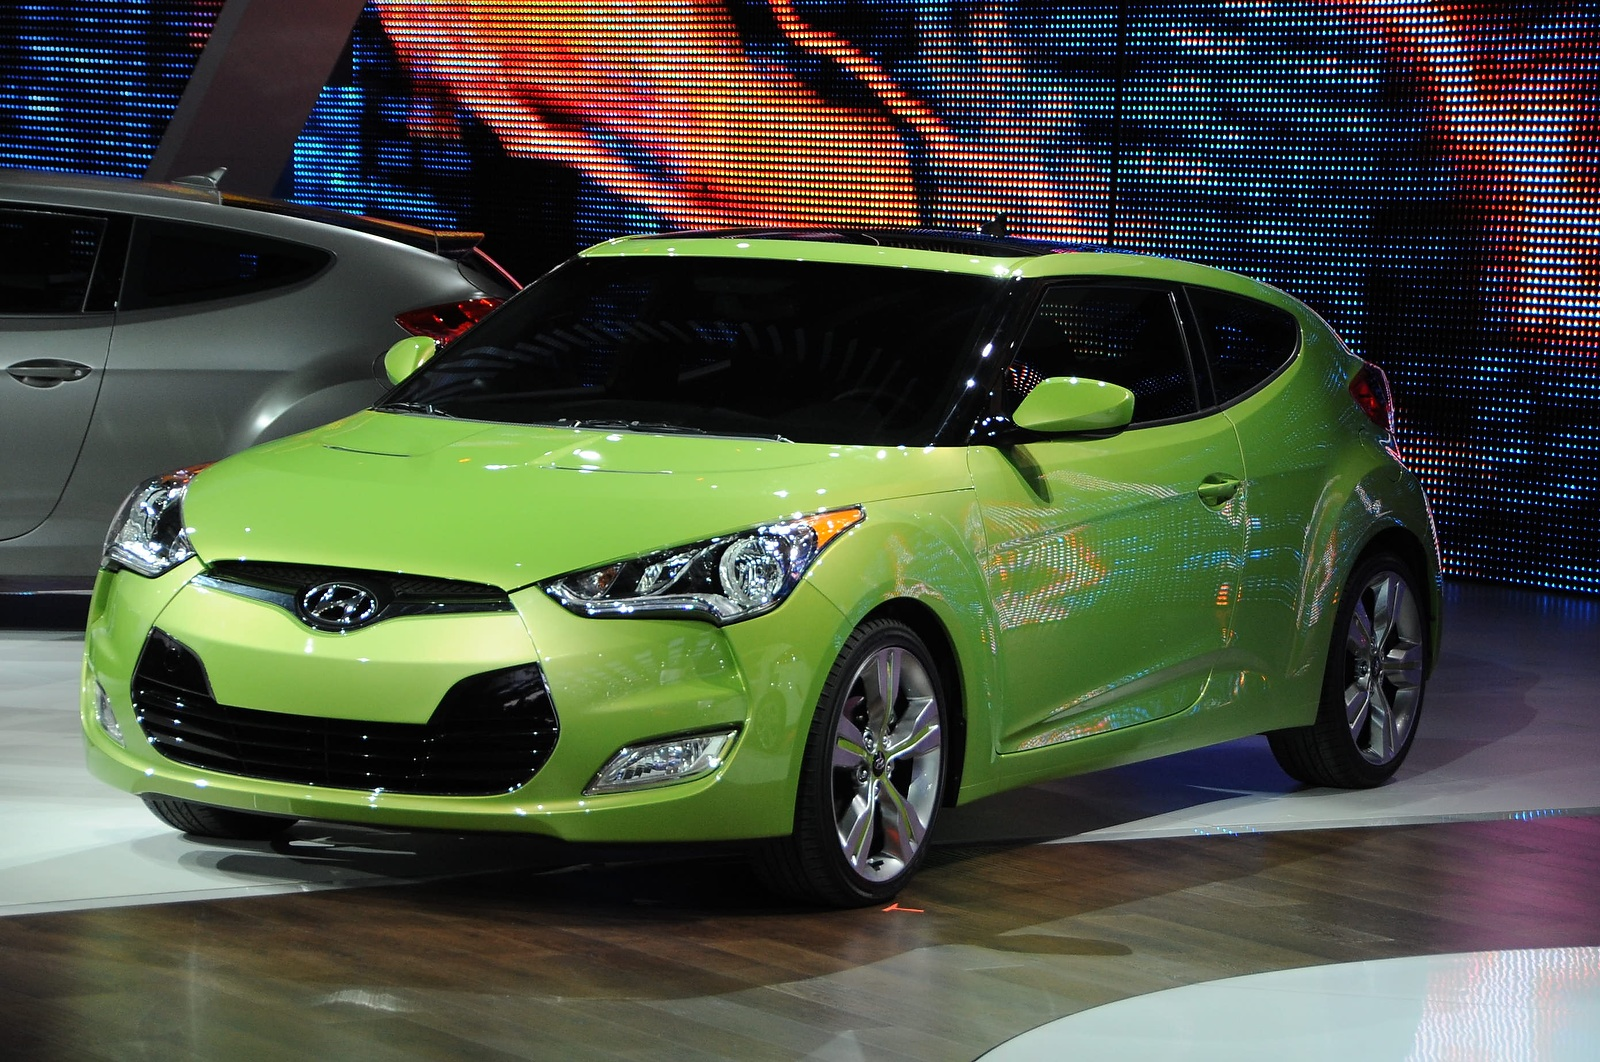 2012 Hyundai Veloster Turbo To Pack 208 Horsepower Report